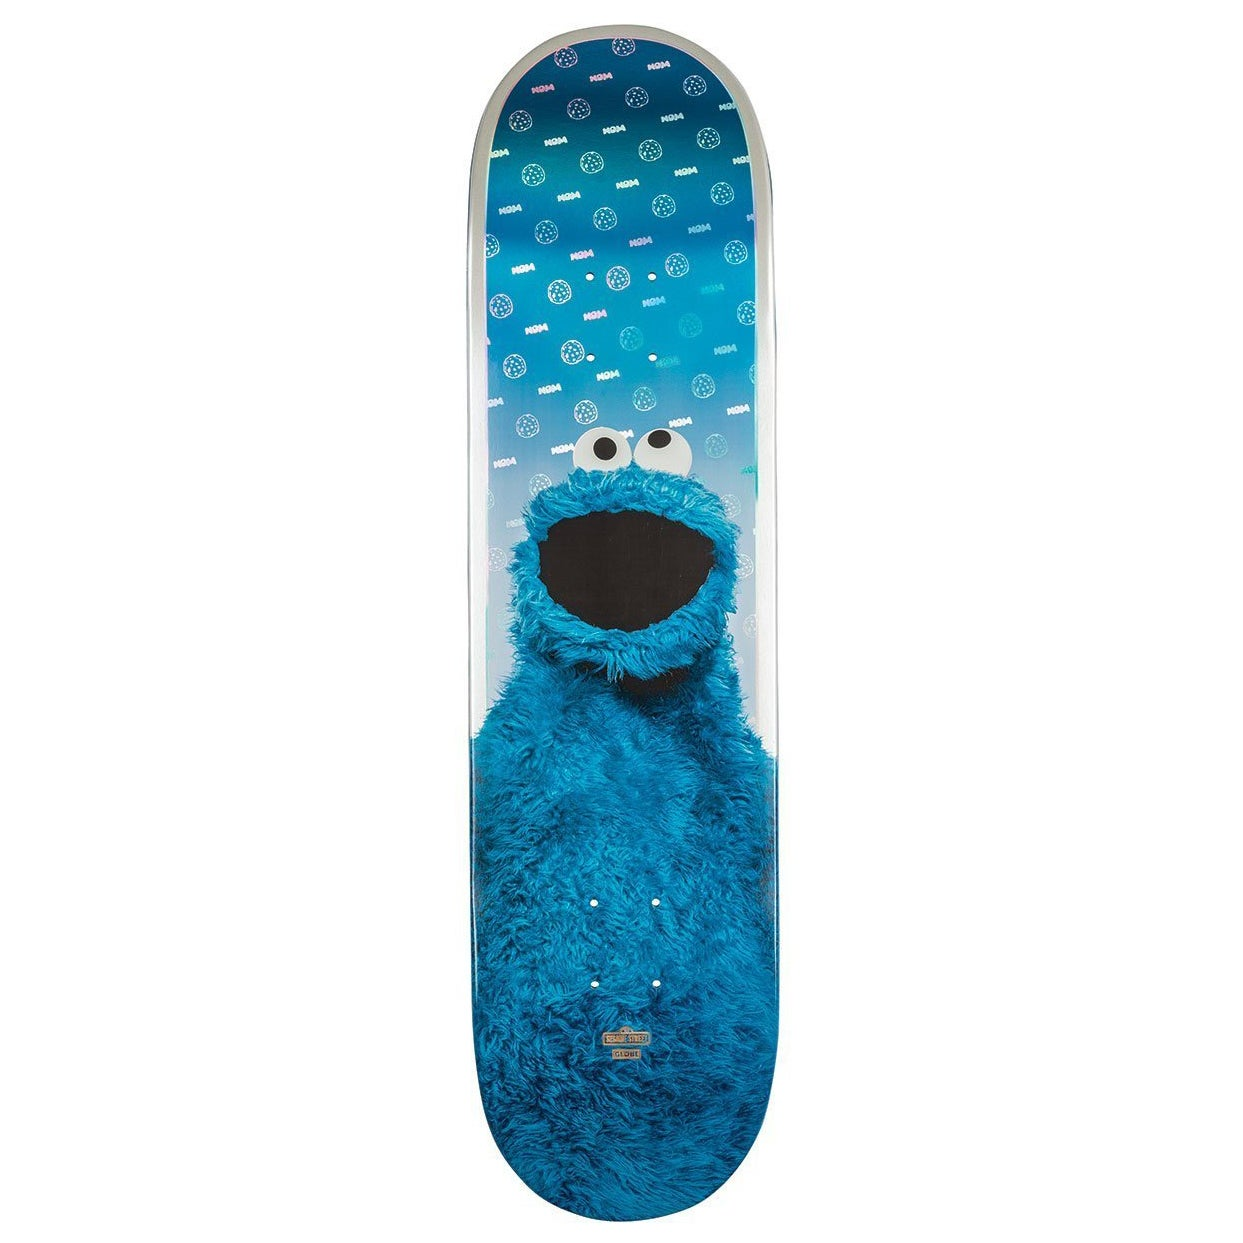 Globe G2 Sesame Street 8.125 Inch Skateboard Deck - Cookie Monster